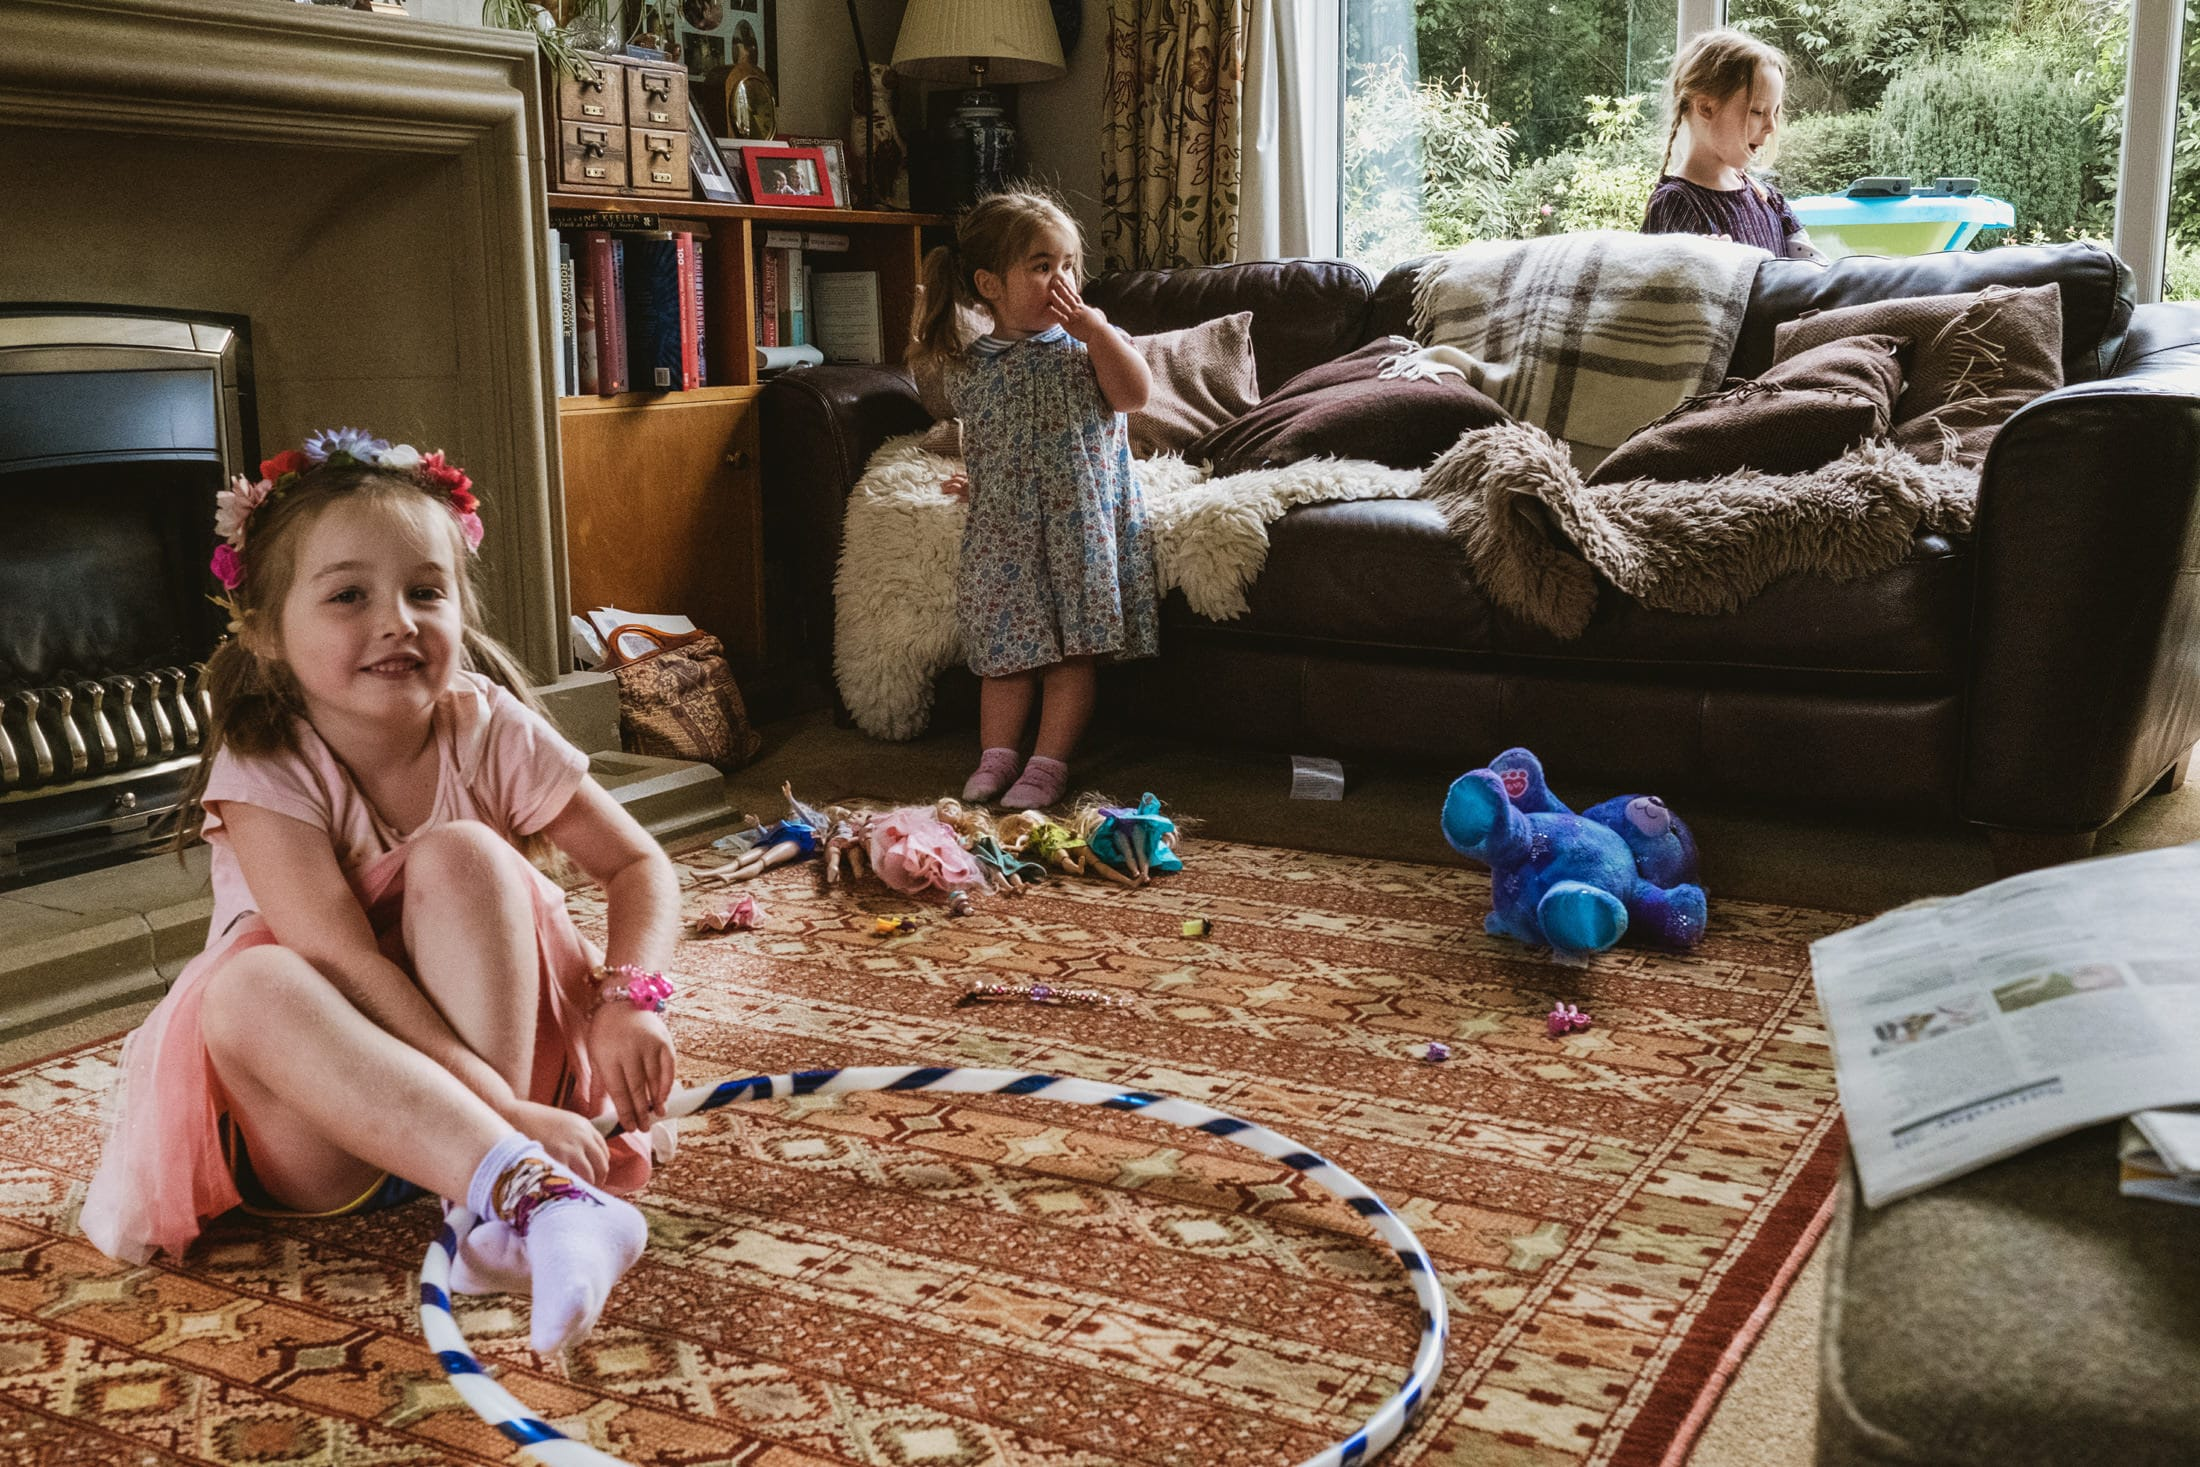 children in the house playing